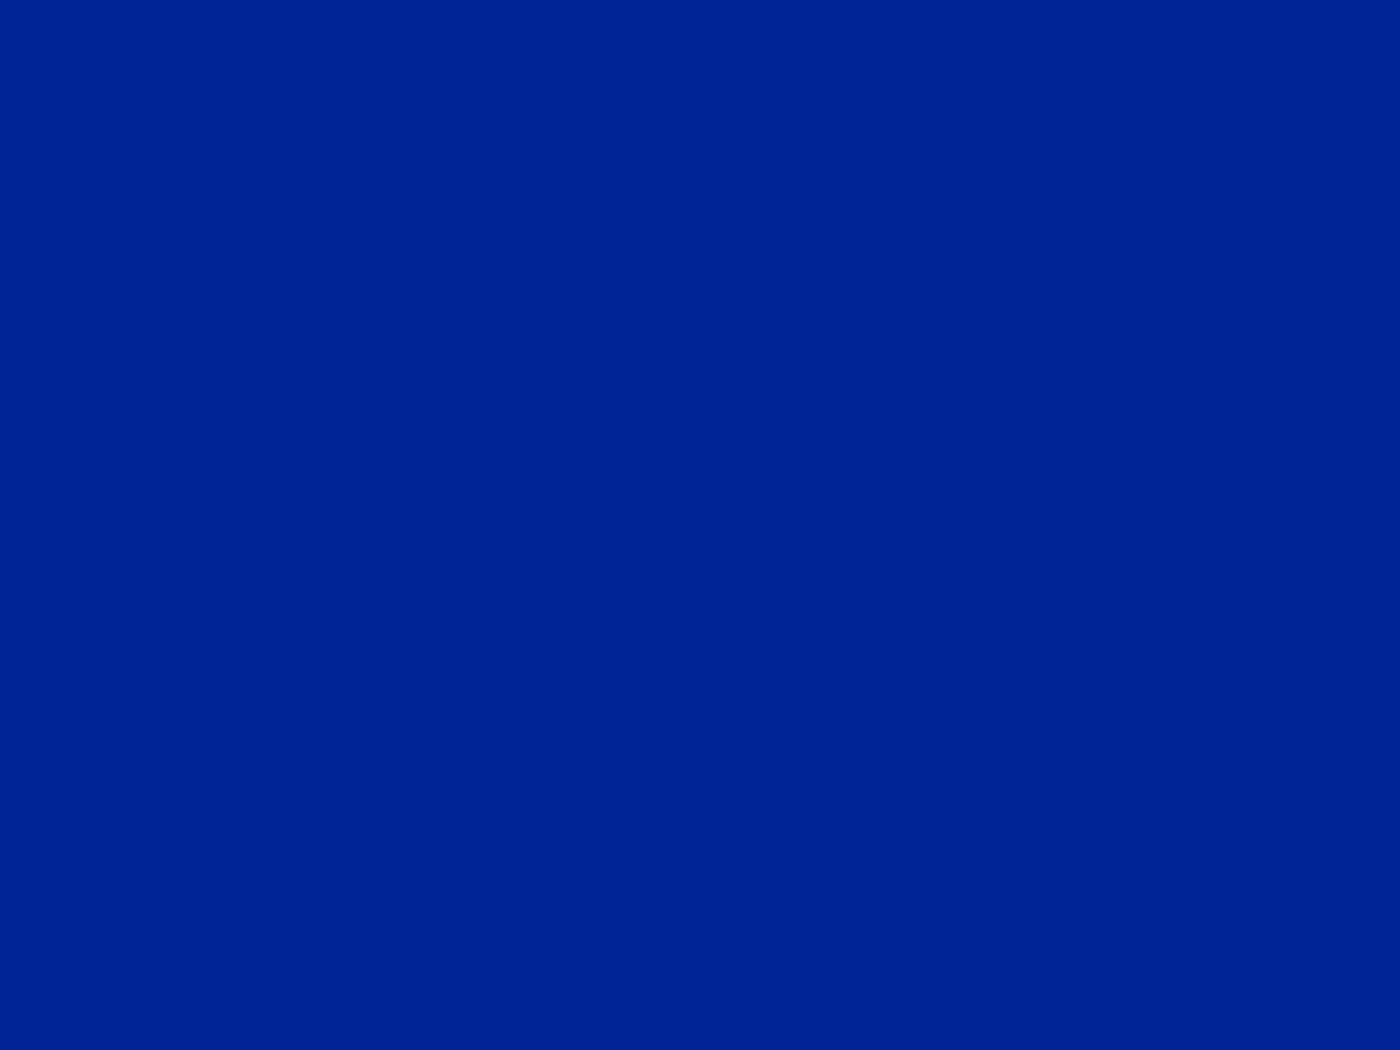 1400x1050 Imperial Blue Solid Color Background